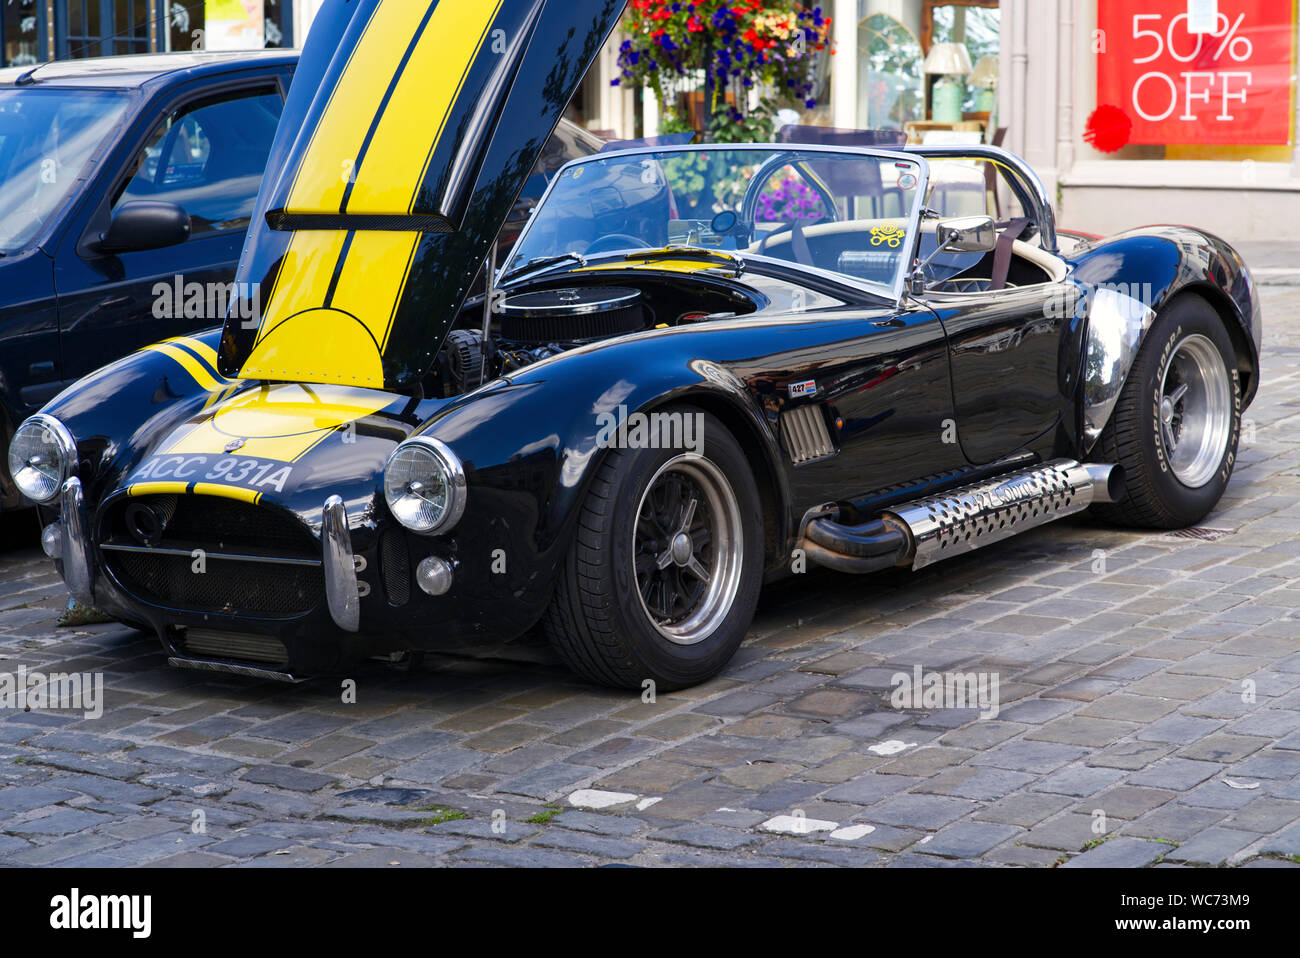 https www alamy com ac cobra replica dax 2009 with the with hood open parked image265687977 html